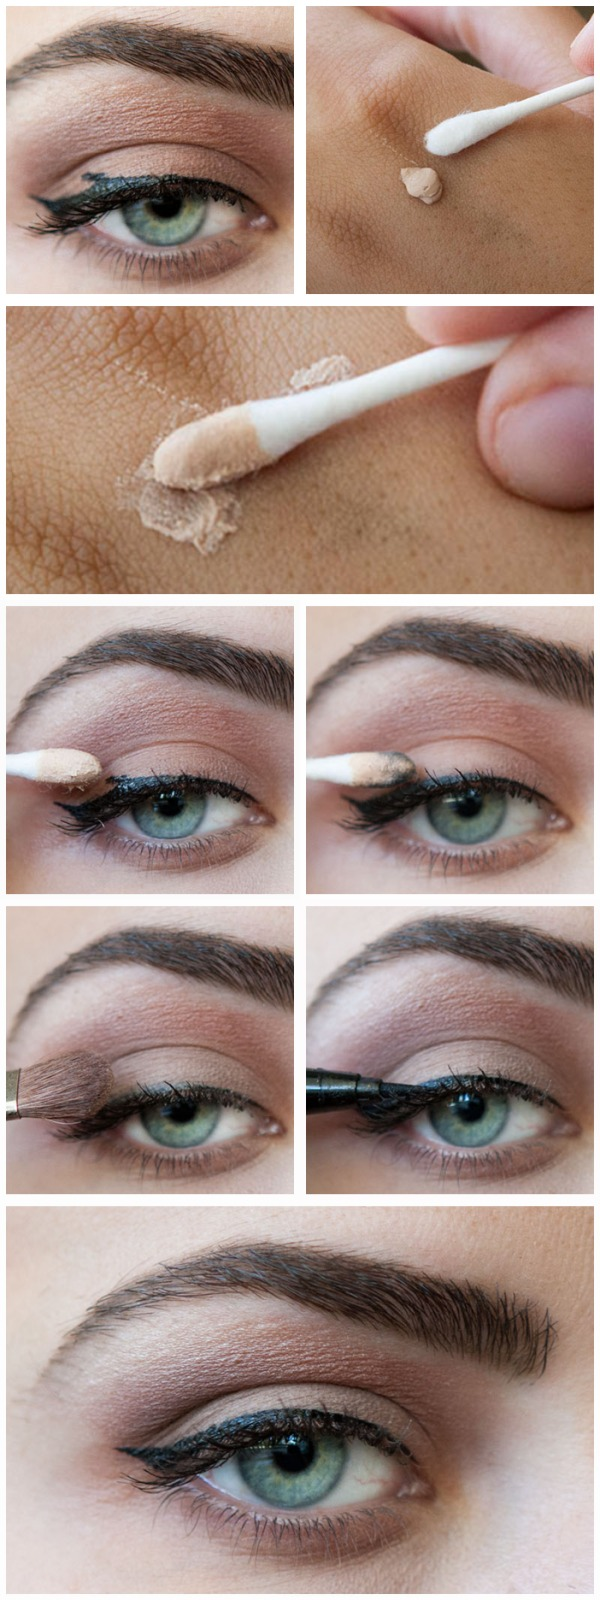 Fix Your Makeup with these Clever Tricks